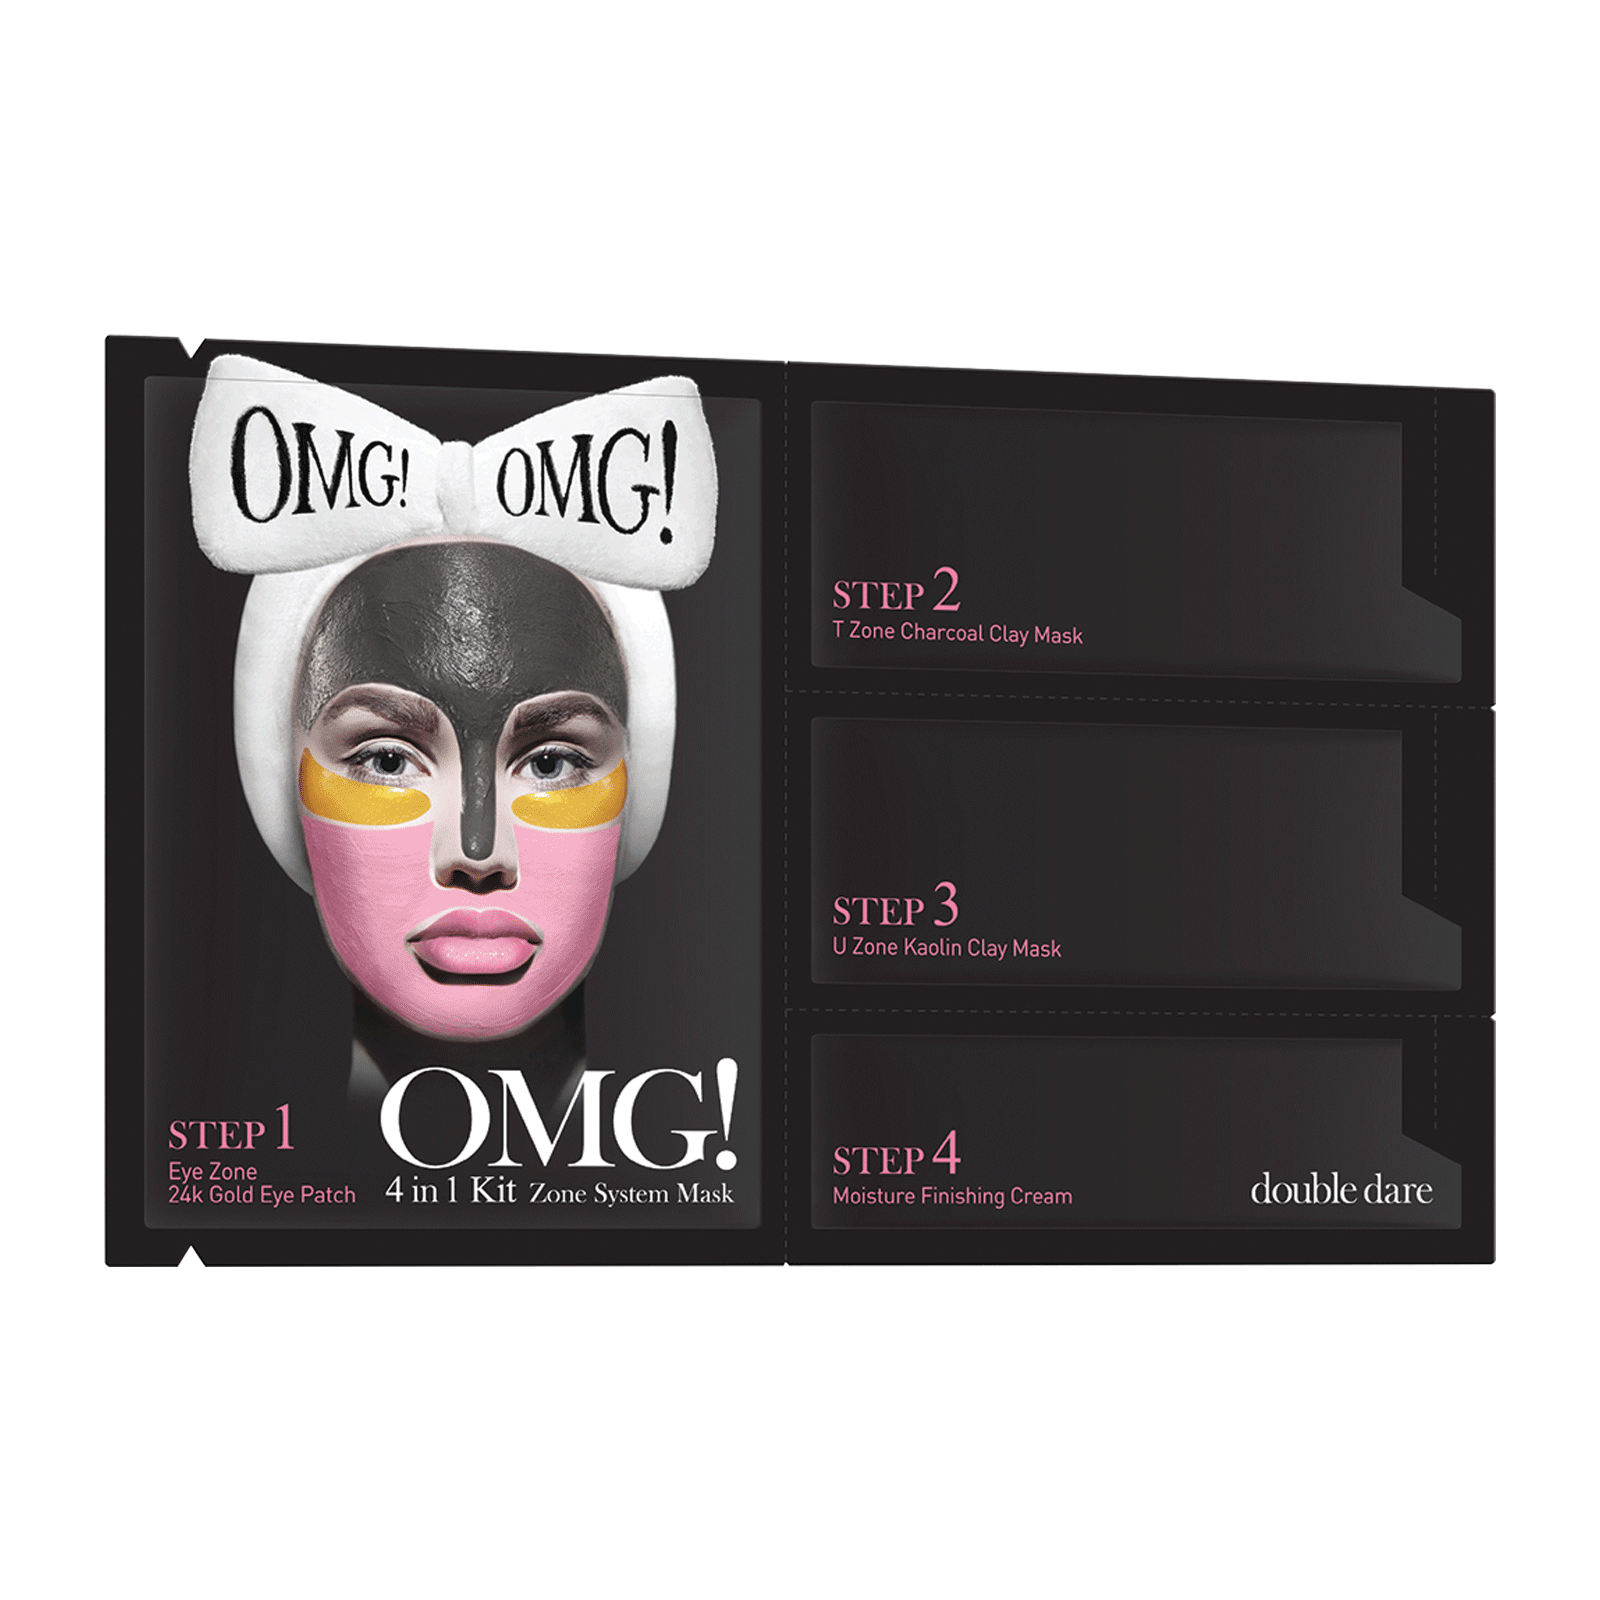 OMG! 4-in-1 Kit Zone System Face Mask